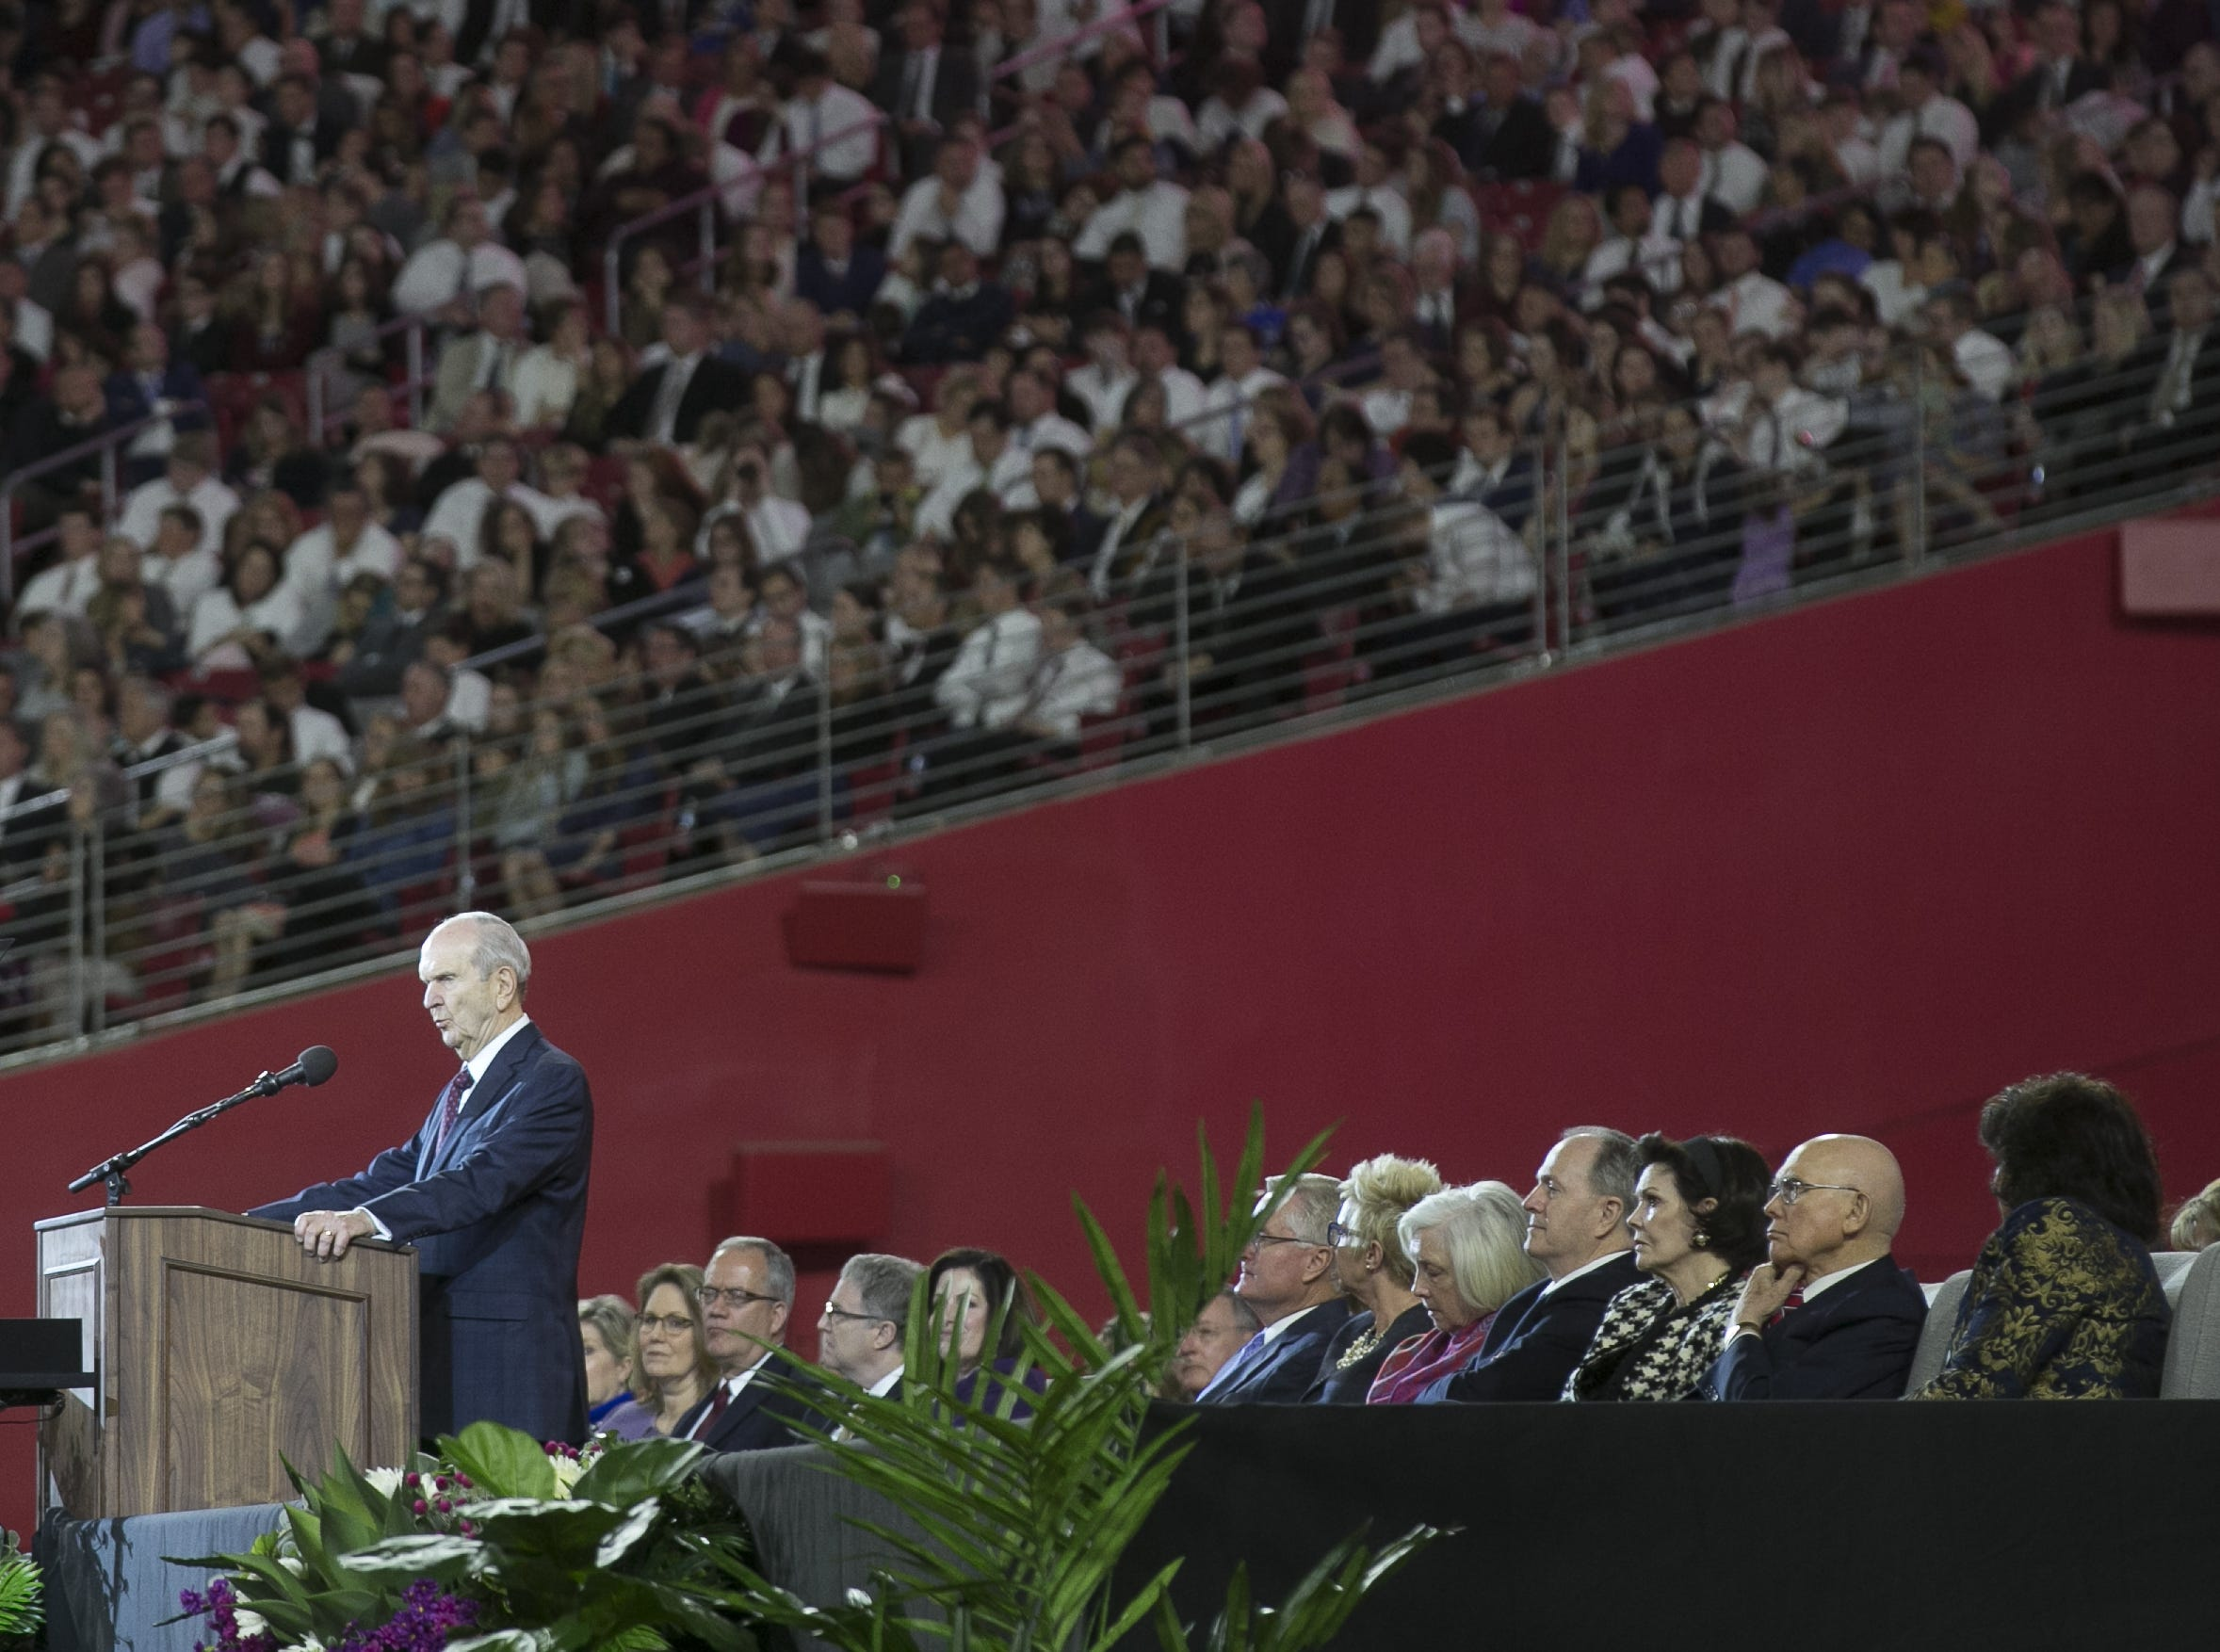 Russell Nelson, president of the Church of Jesus Christ of Latter-day Saints, speaks to members of the church at a devotional at State Farm Stadium on Sunday, Feb. 10, 2019.